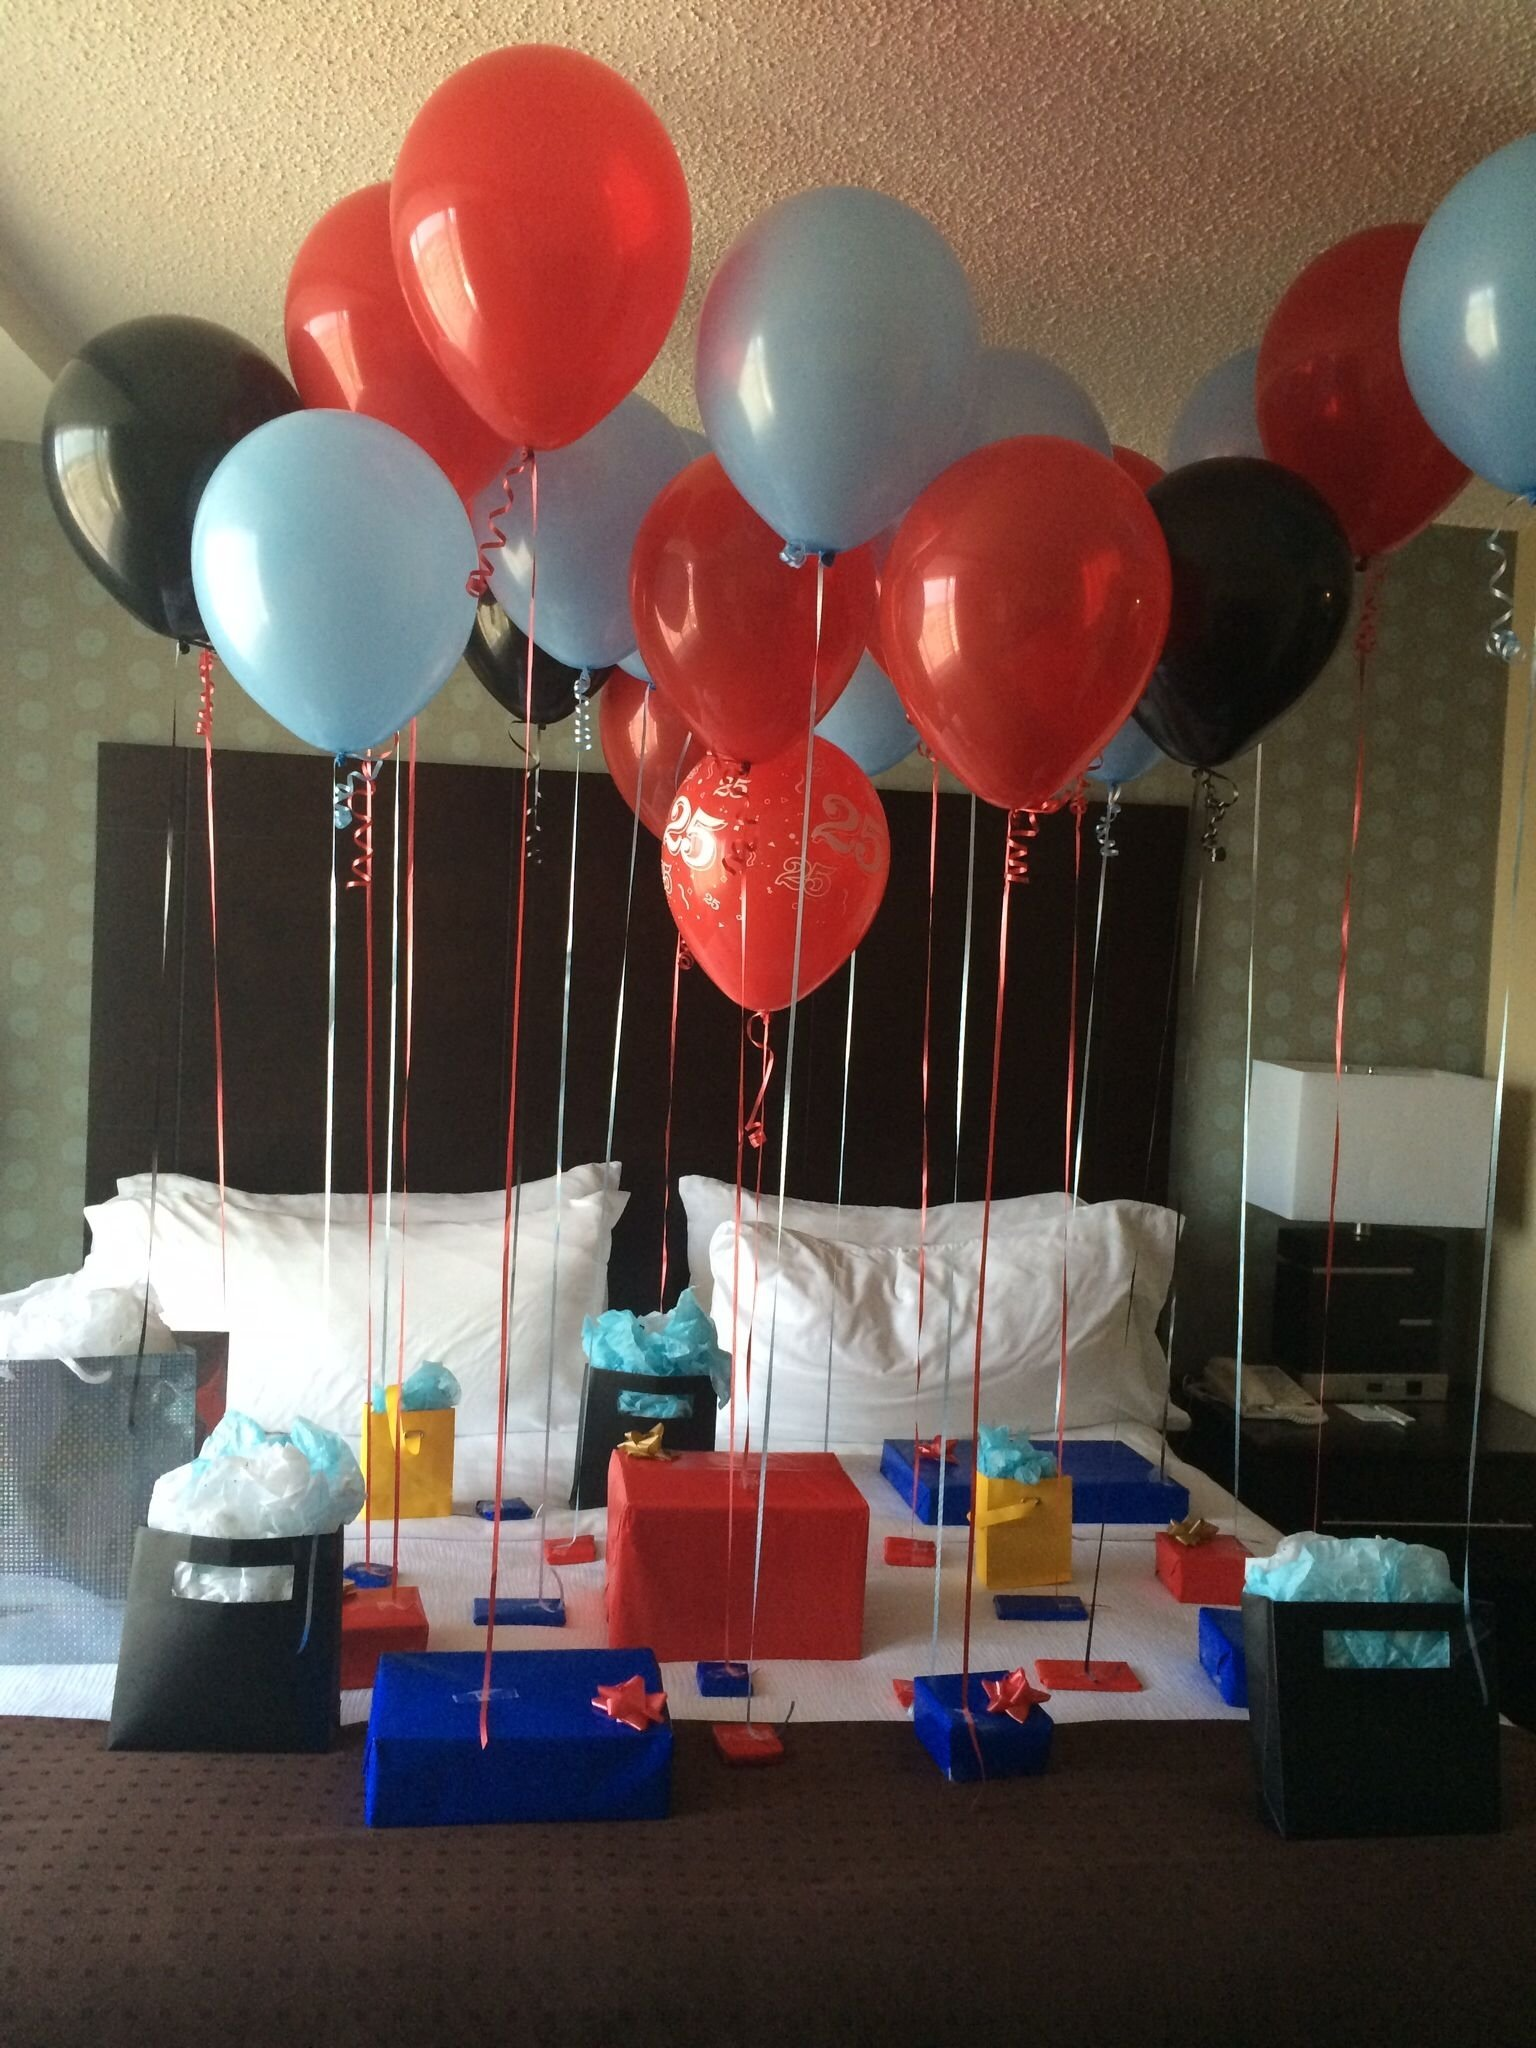 10 Most Recommended 25Th Birthday Ideas For Boyfriend 25 gifts for 25th birthday amazing birthday idea he loved it 1 2020